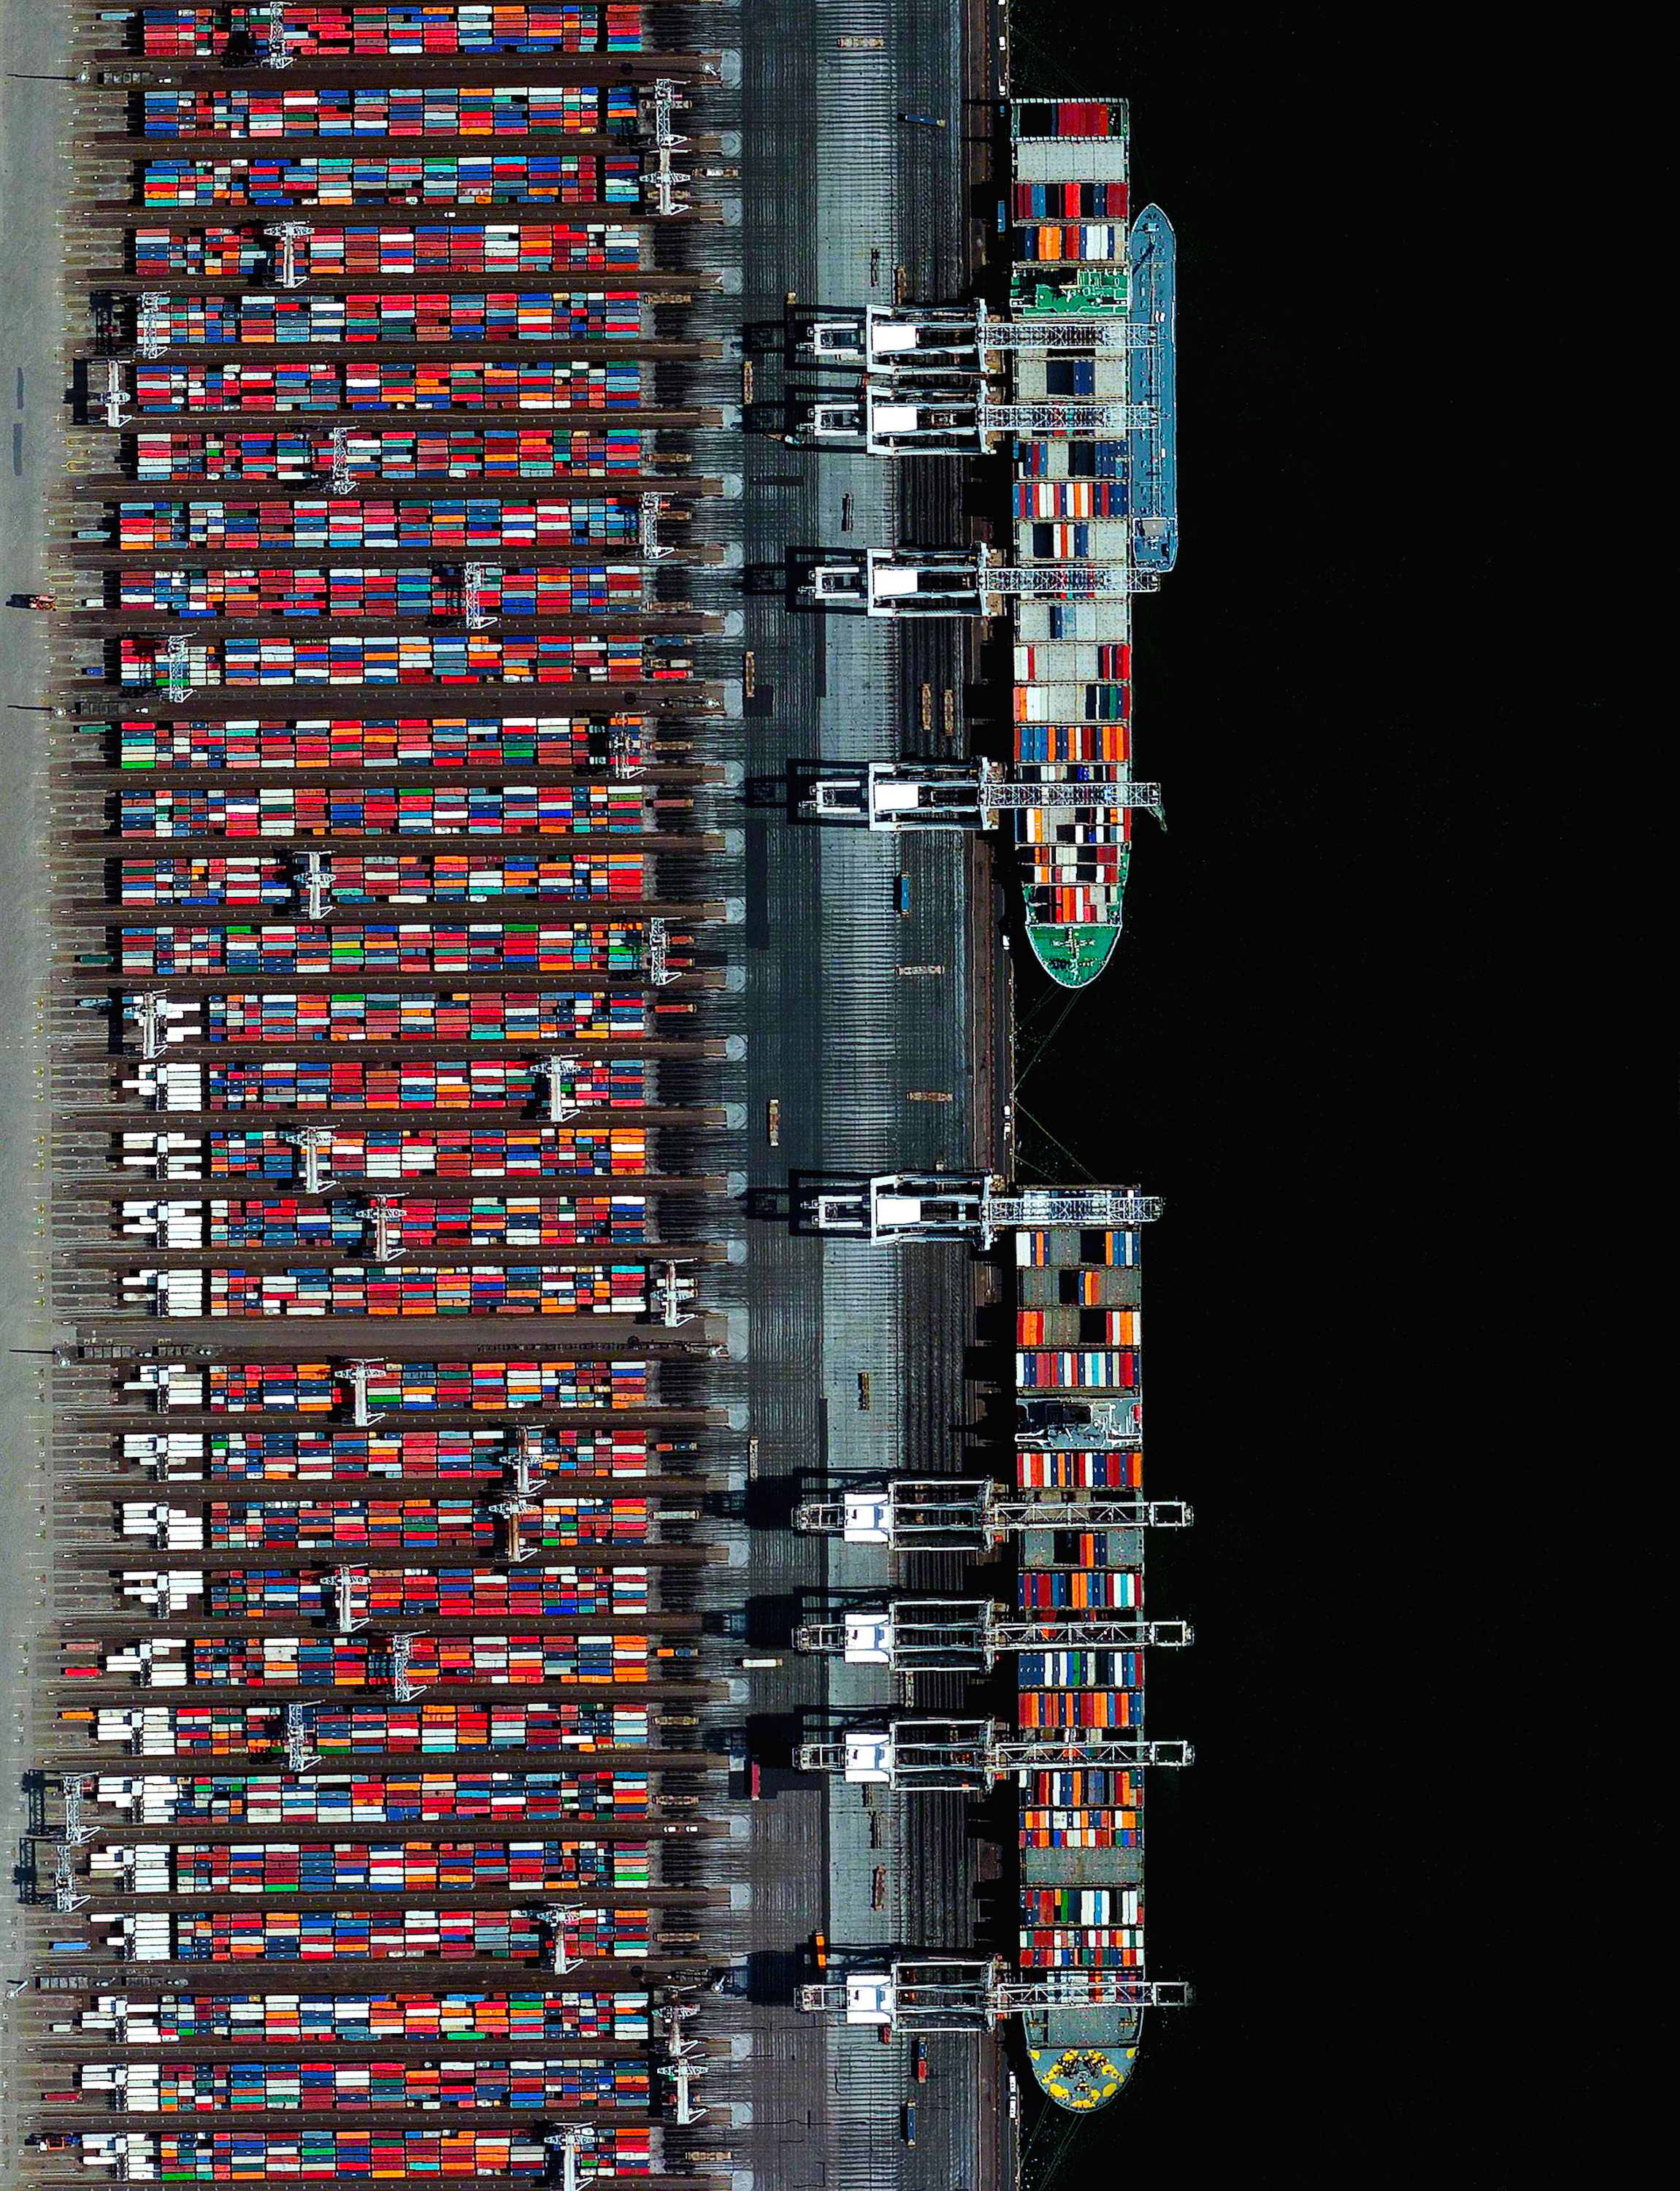 11/21/2015   Port of Rotterdam   Rotterdam, Netherlands  51.950990461°, 4.065449412°    Two container ships are docked at the Port of Rotterdam in the Netherlands. From 1962 until 2002 it was the world's busiest port, but was overtaken first by the the port in Singapore and later by the facility in Shanghai, China. Container ships such as these can weigh up to 300,000 tons and extend up to 1,200 feet (366 meters).